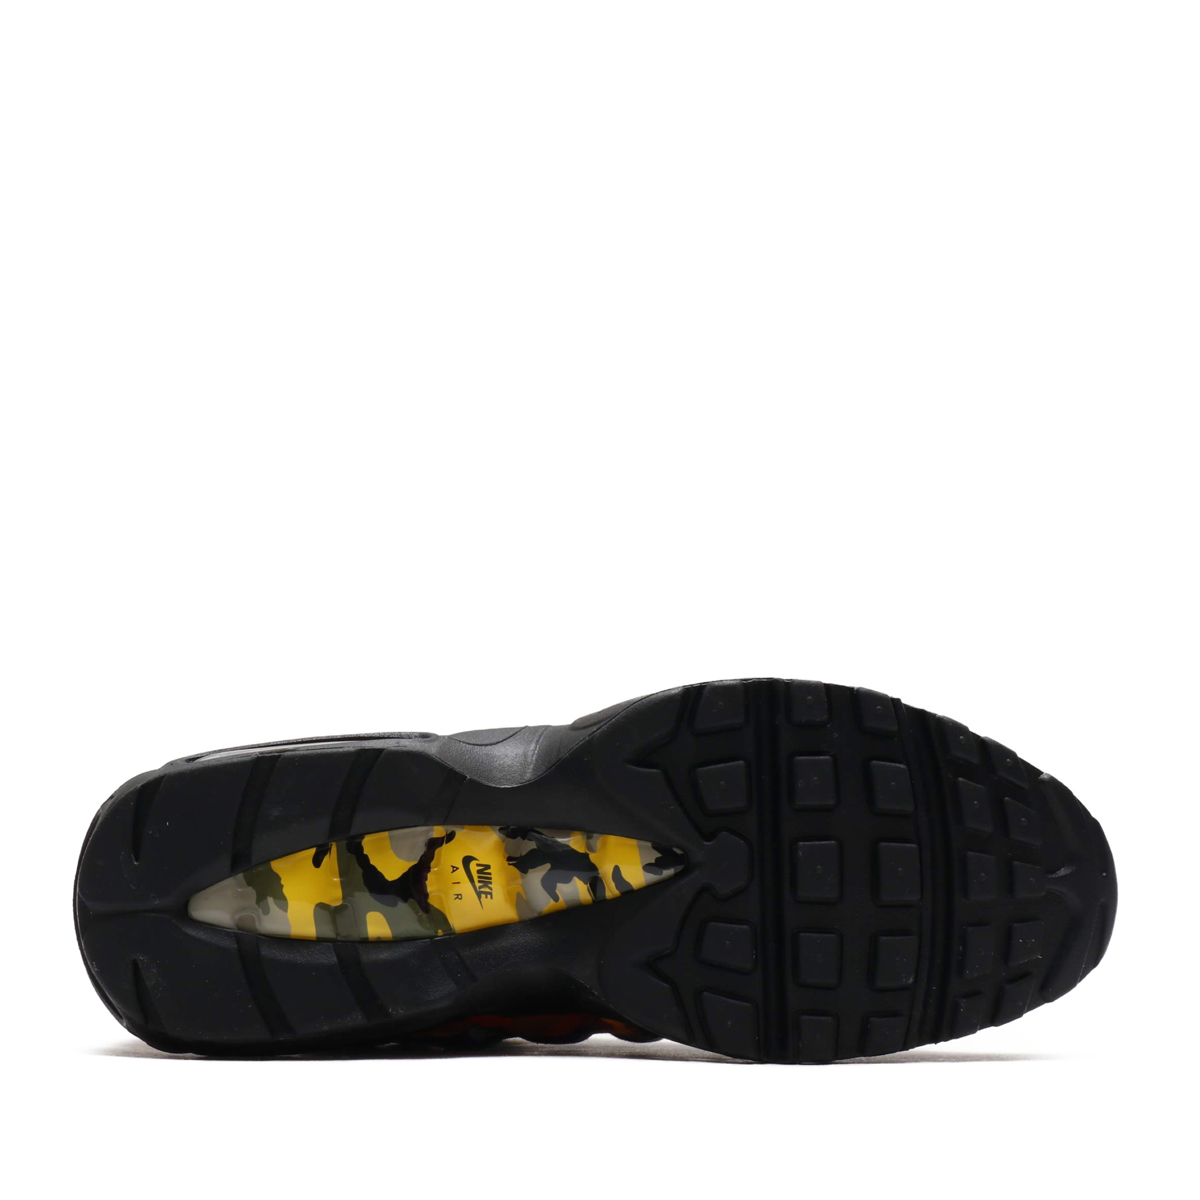 new style 6b8b0 be101 Nike Air Max 95 ERDL Party Black - 6